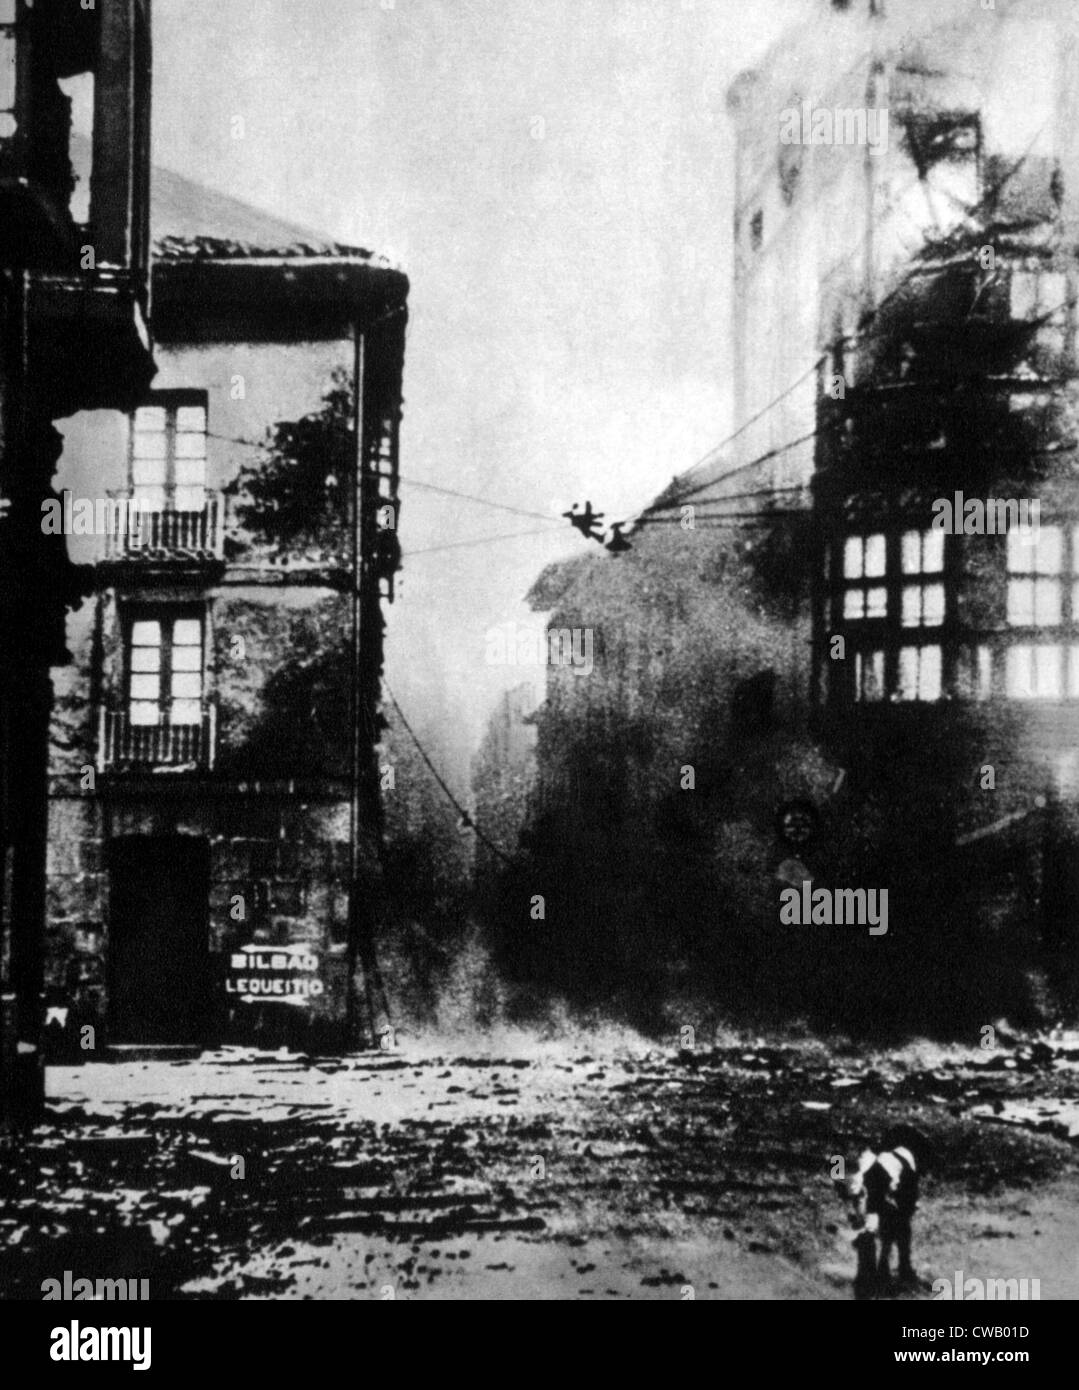 Spanish Civil War (1936-1939), the destruction of the Spanish town of Guernica by German Bombers, 1937. - Stock Image